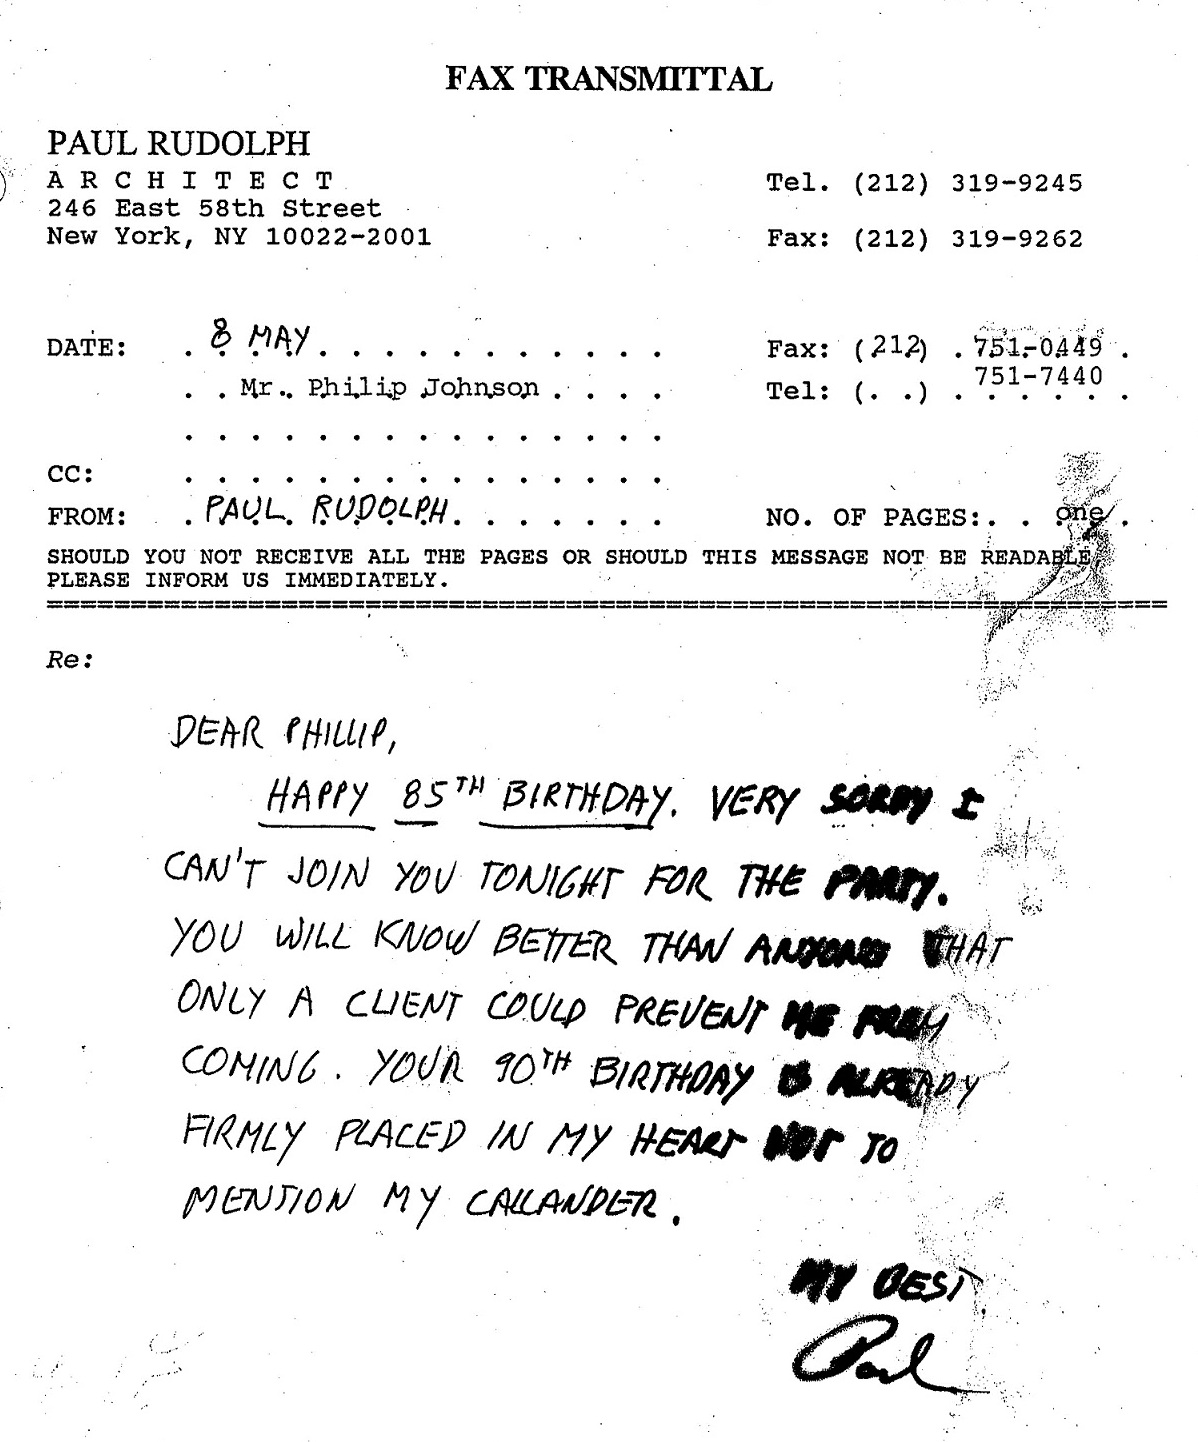 A birthday note—via fax—from Paul Rudolph to Philip Johnson. Since Johnson was born in 1906, and the there's a reference in the note to this being his 85th, birthday, it must have faxed over in 1991. From the archives of the Paul Rudolph Heritage Foundation, © The Paul Rudolph estate, Paul Rudolph Heritage Foundation.